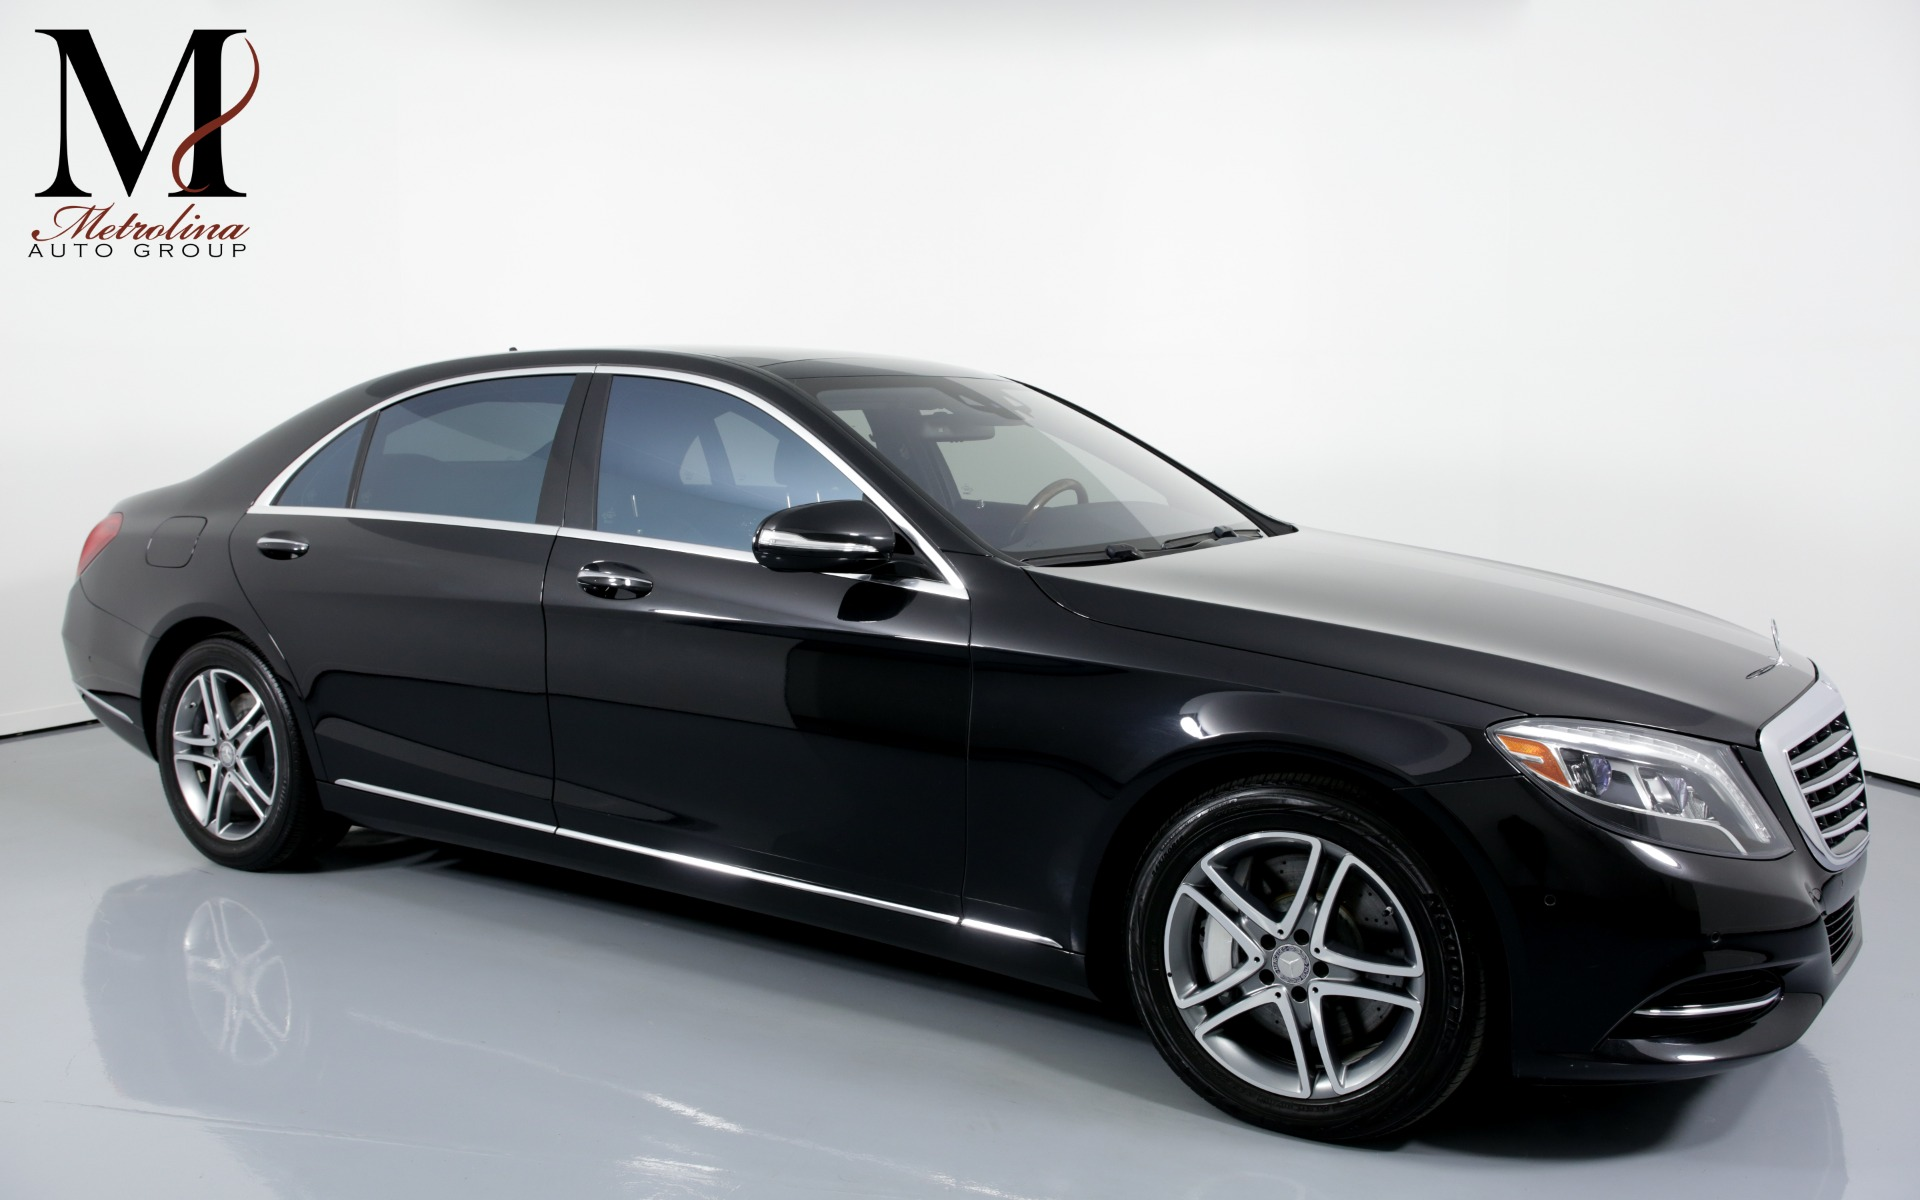 Used 2016 Mercedes-Benz S-Class S 550 4dr Sedan for sale $44,996 at Metrolina Auto Group in Charlotte NC 28217 - 1